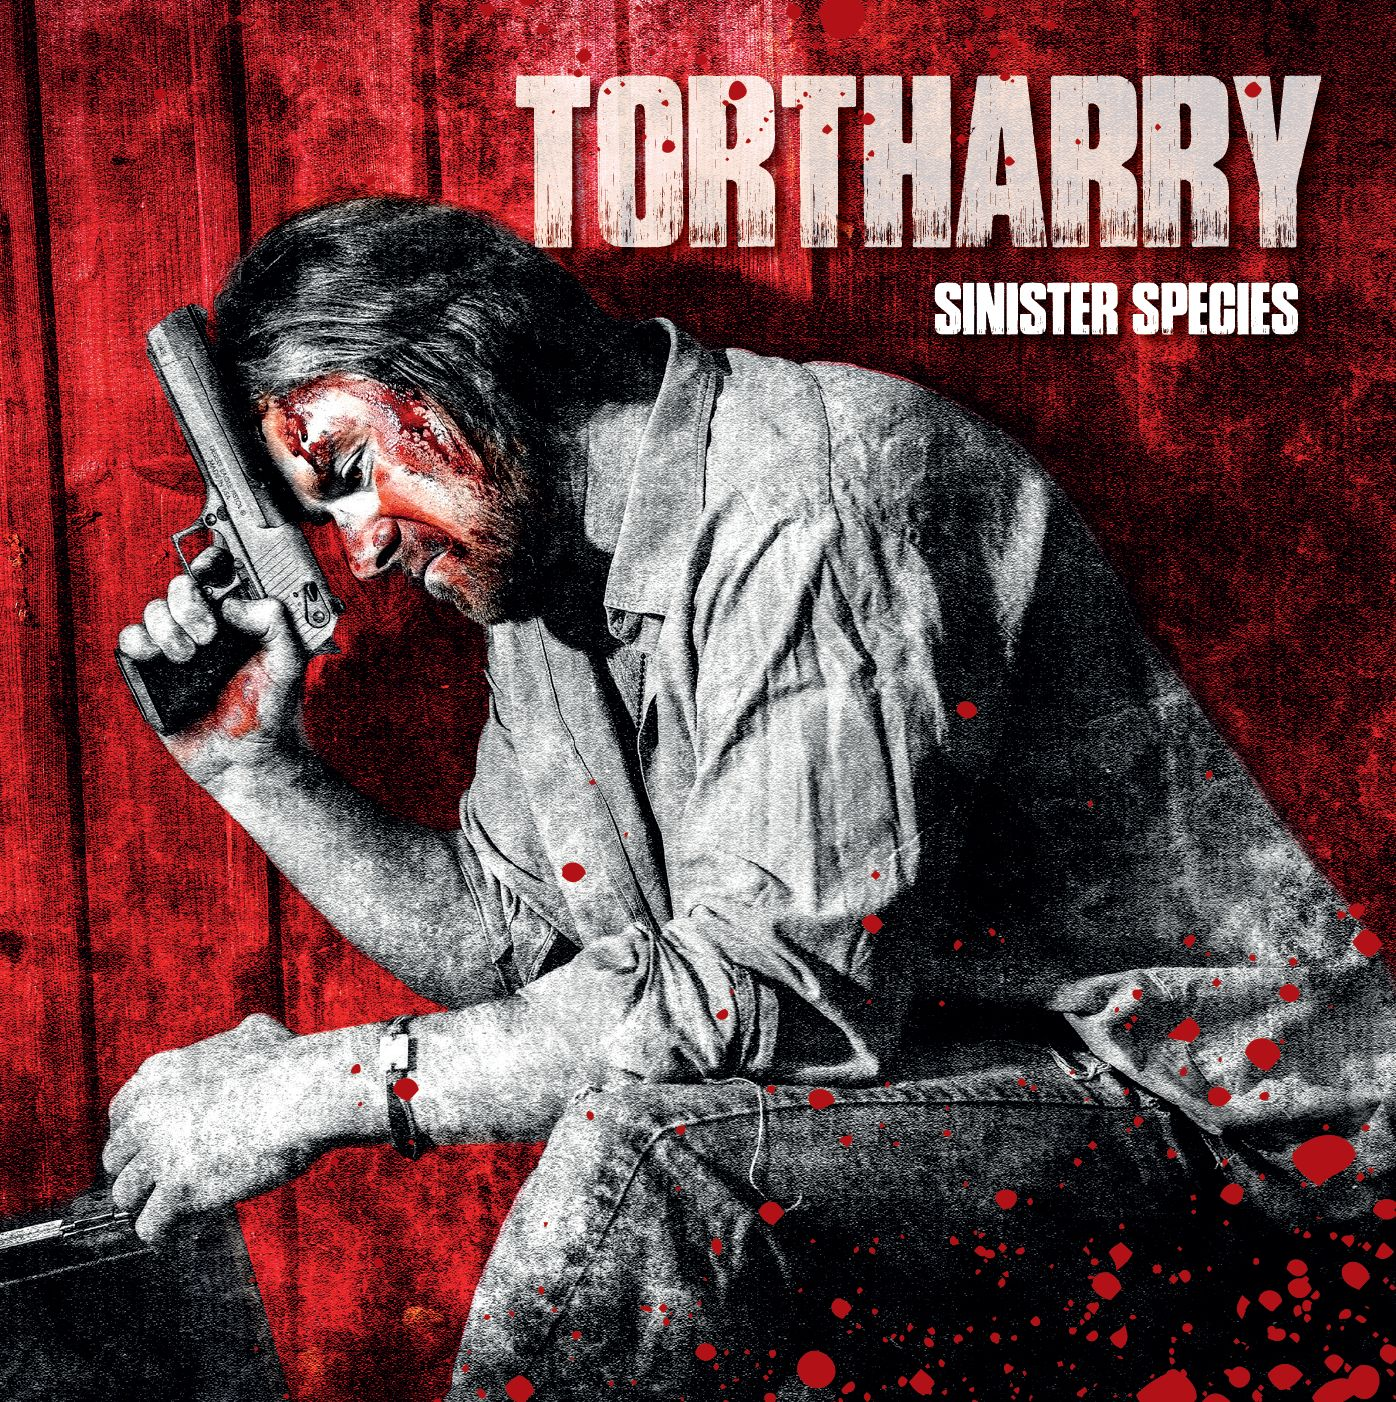 TORTHARRY Sinister Species (LP černé)